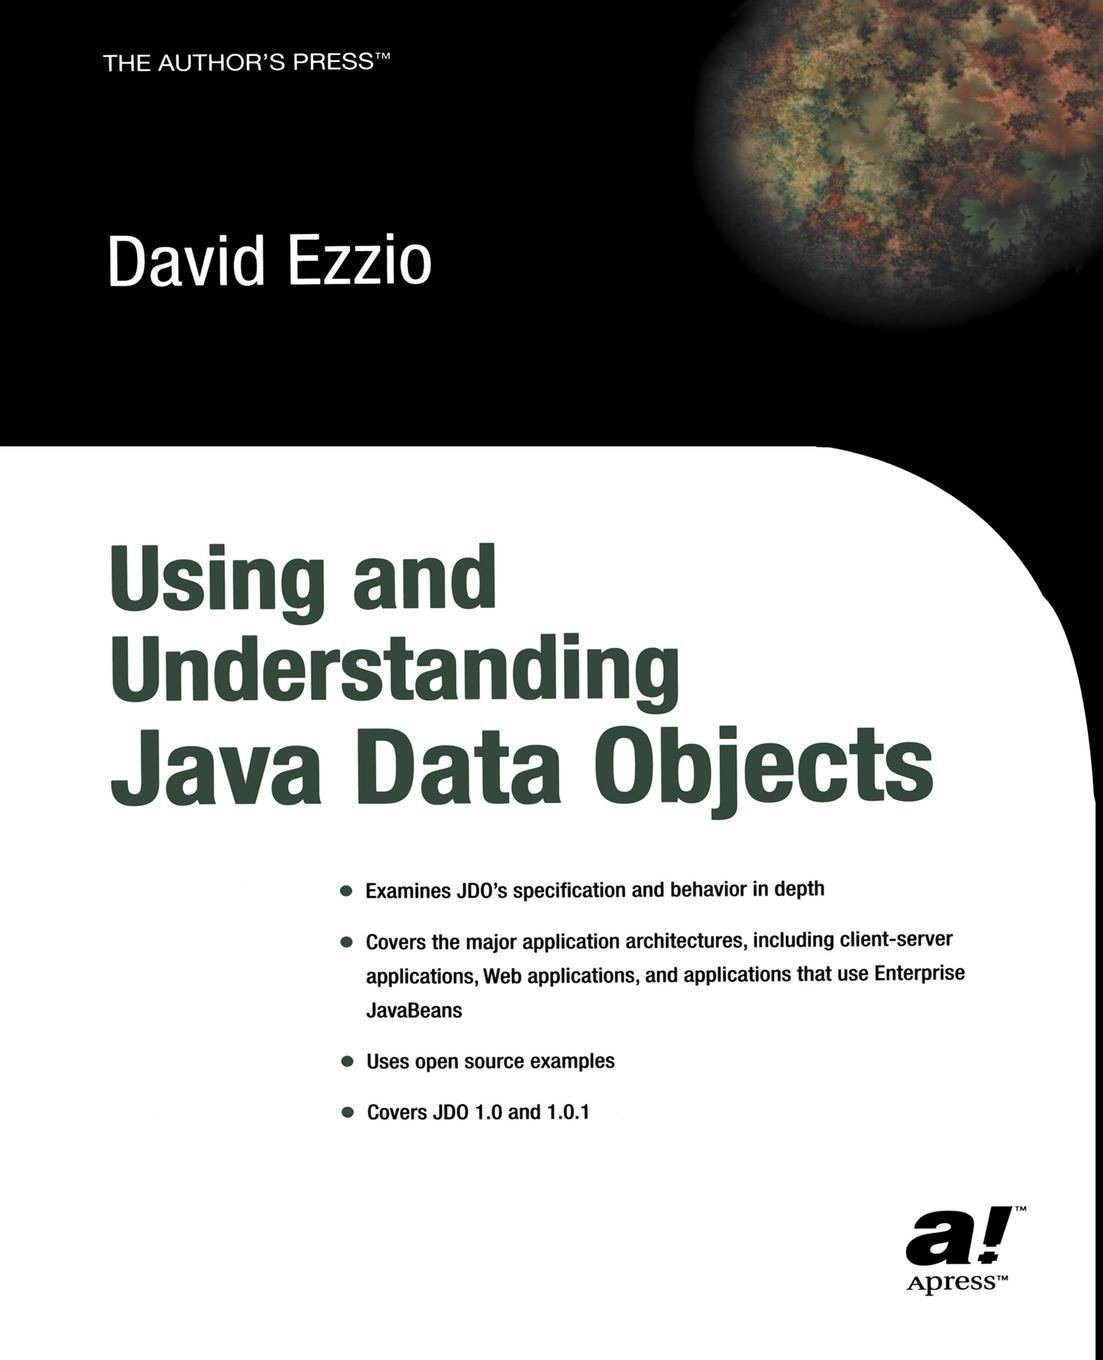 Using and Understanding Java Data Objects: Amazon co uk